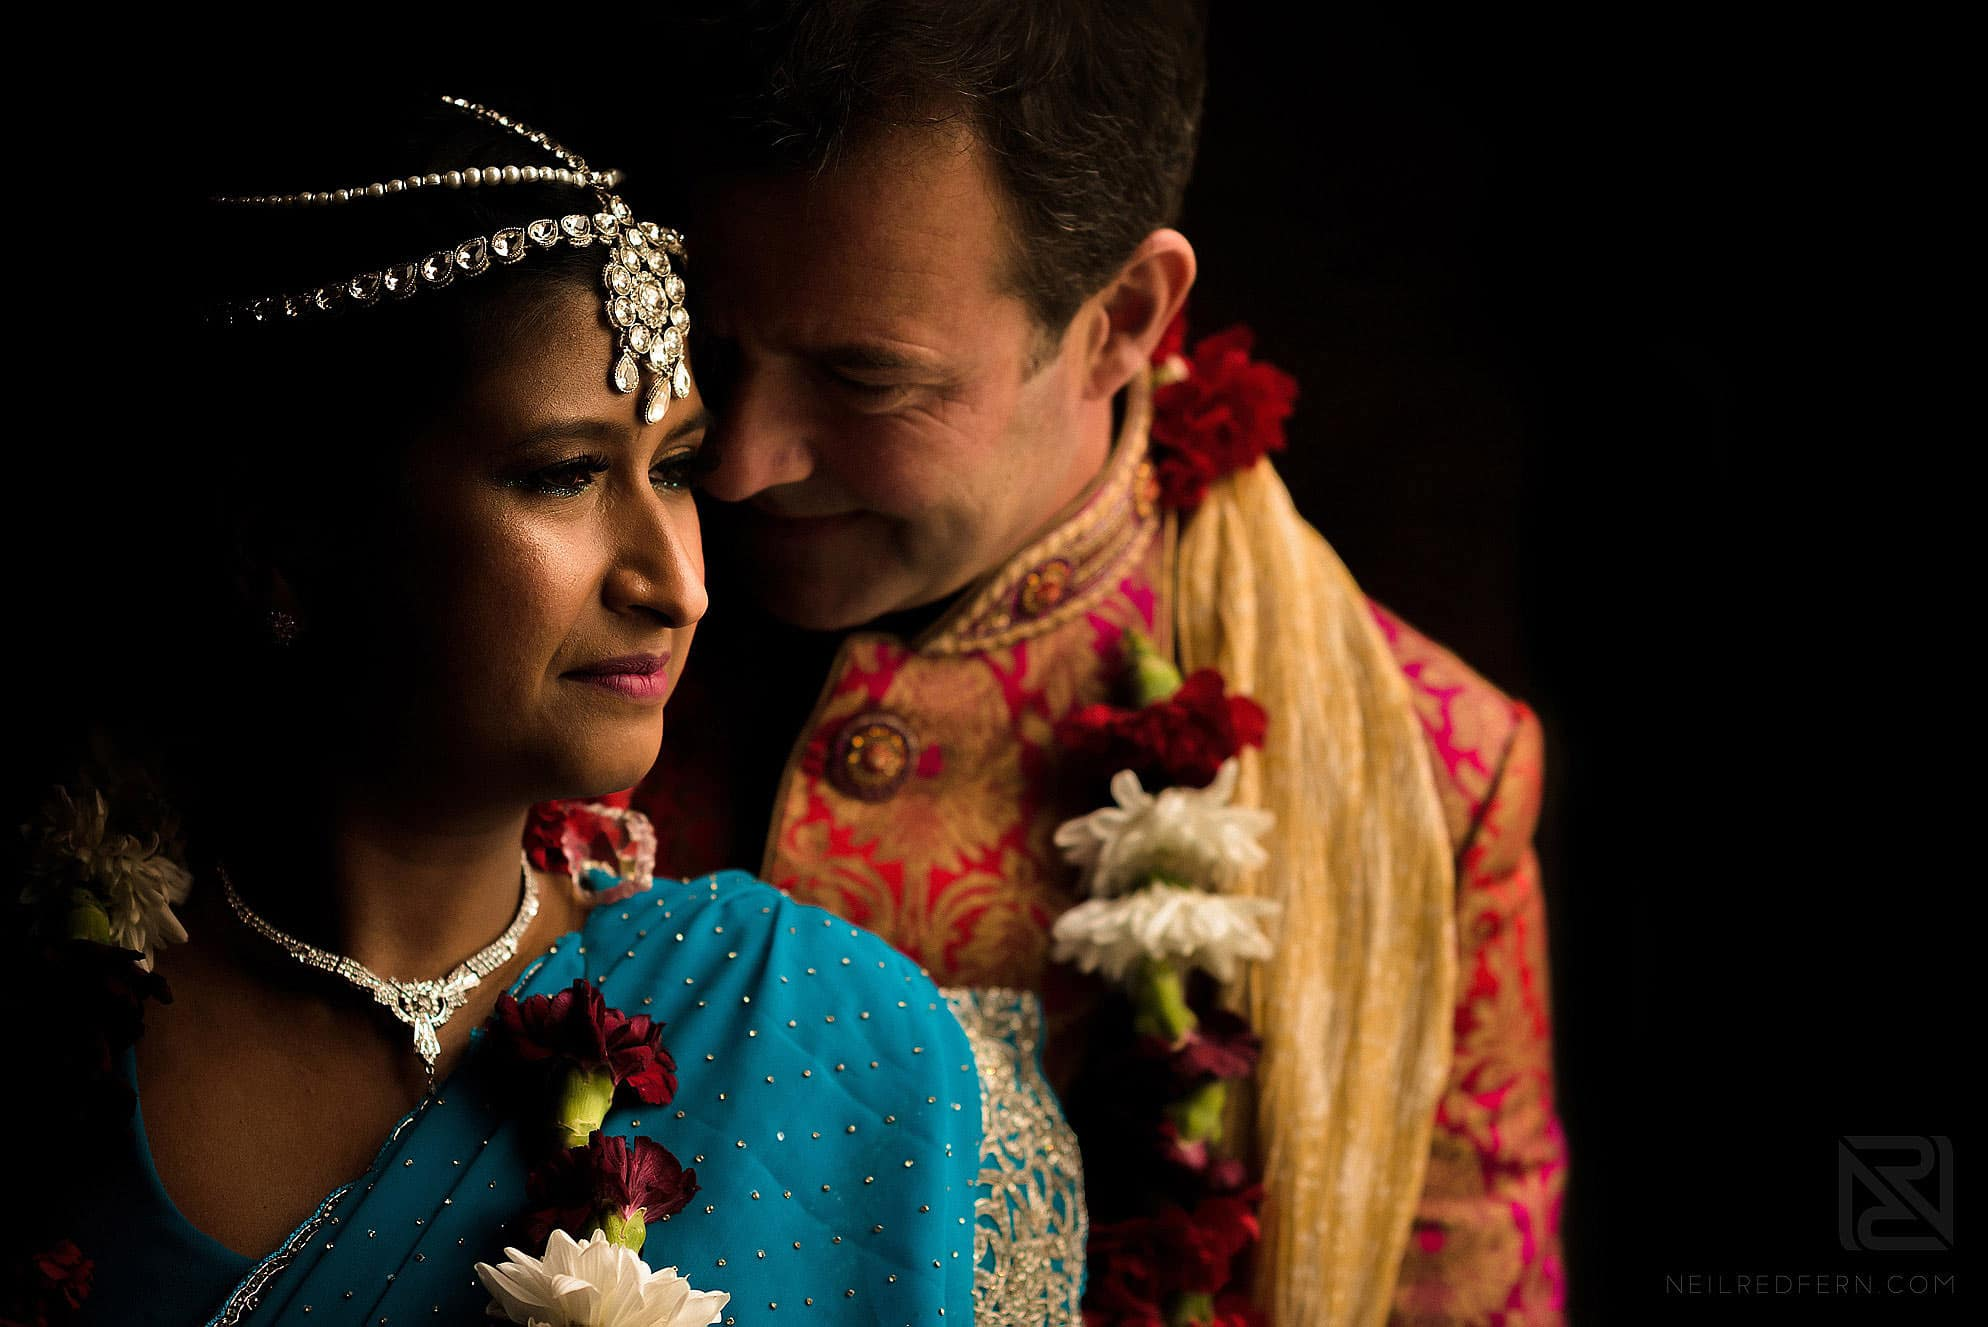 bride and groom portrait at Hindu wedding